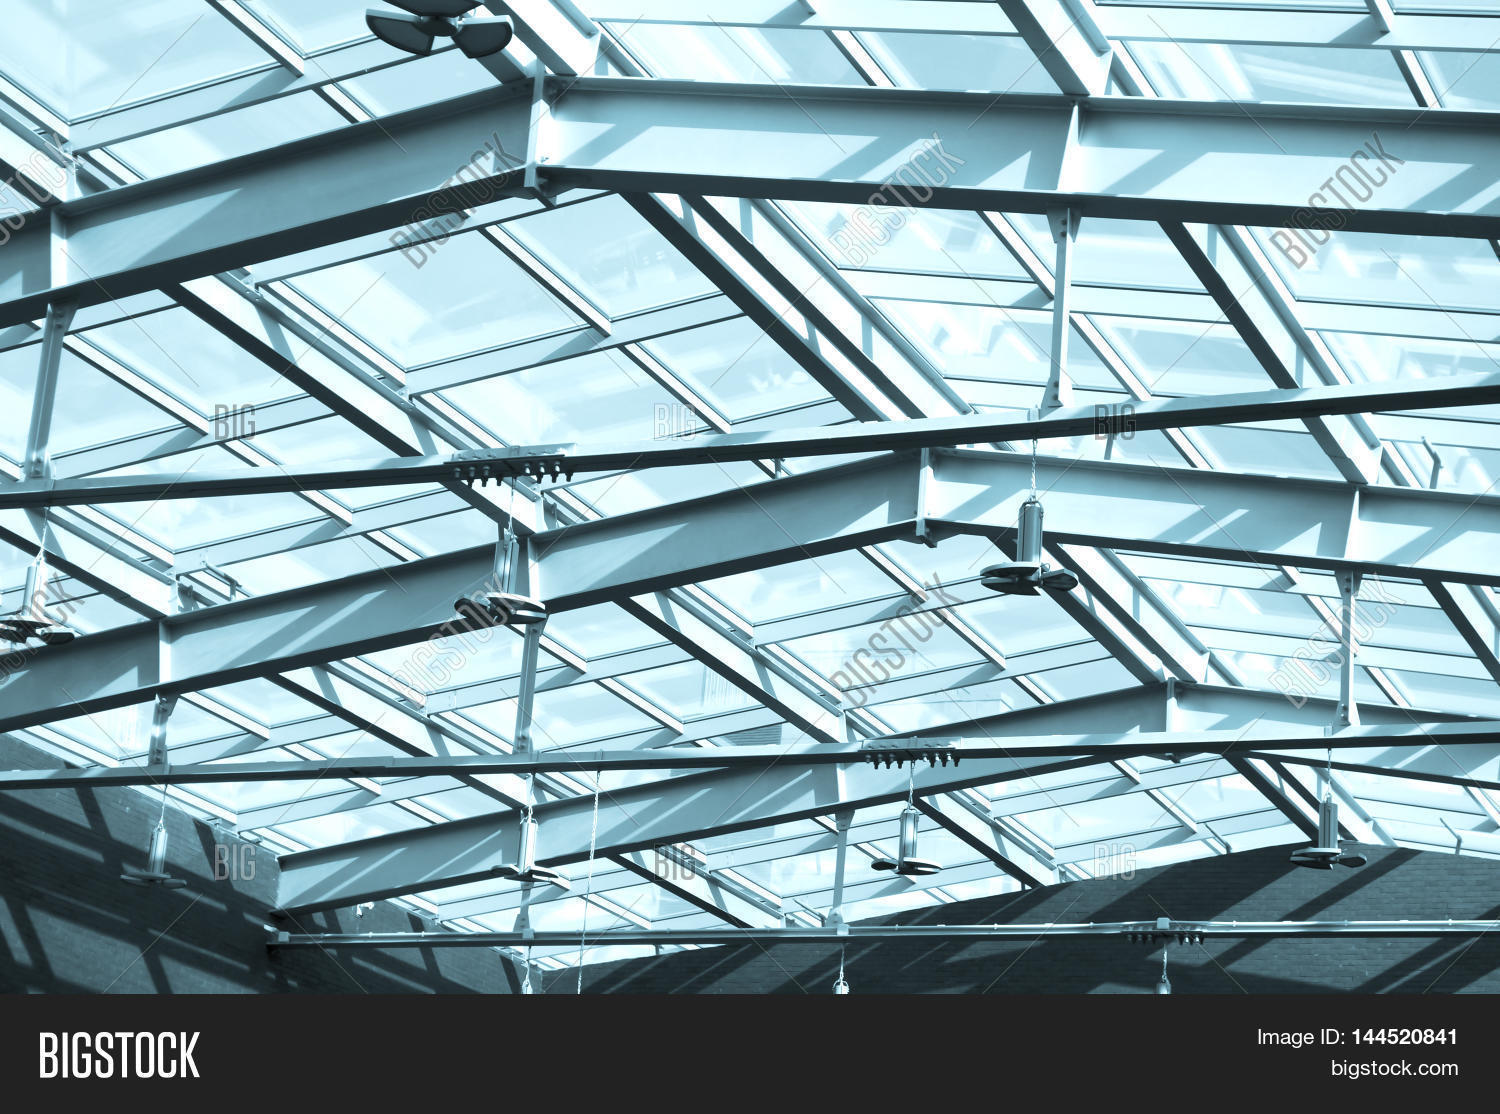 Glass Roof In Building Under The Roof Glass And Metal